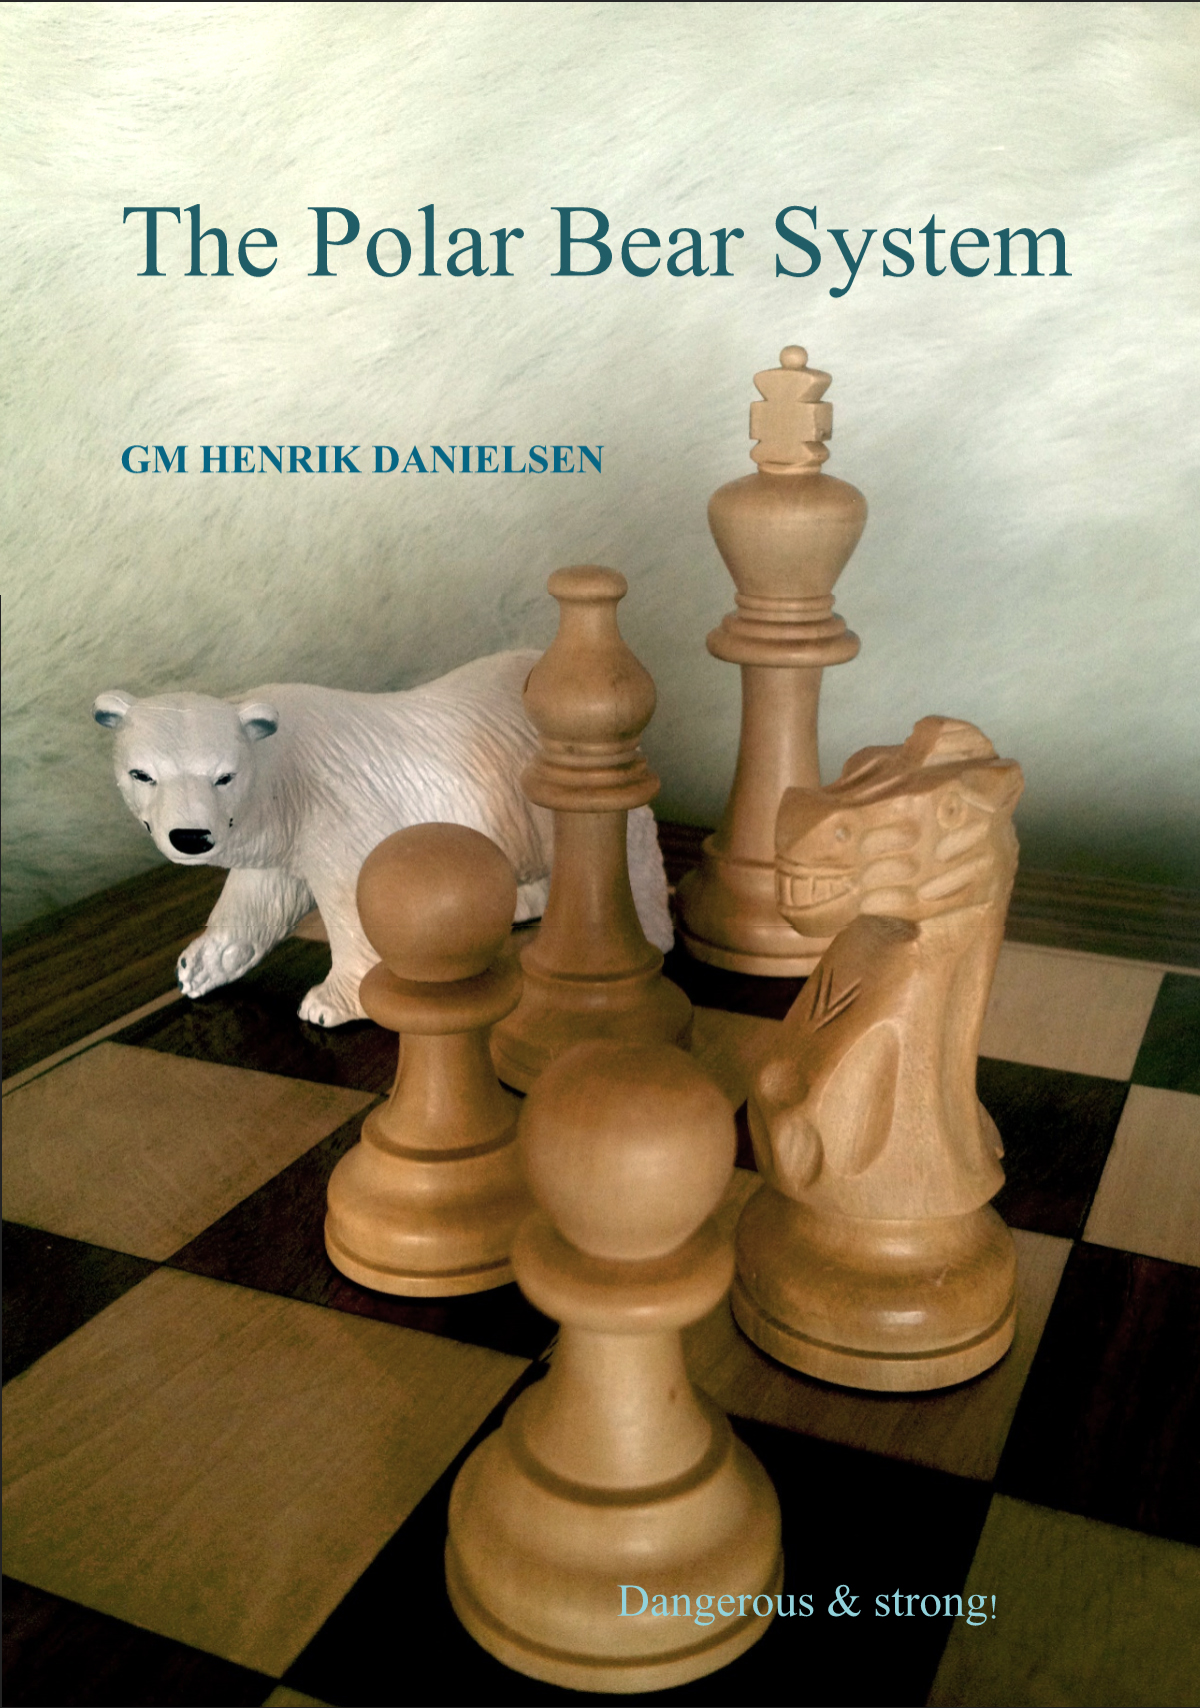 The Polar Bear System